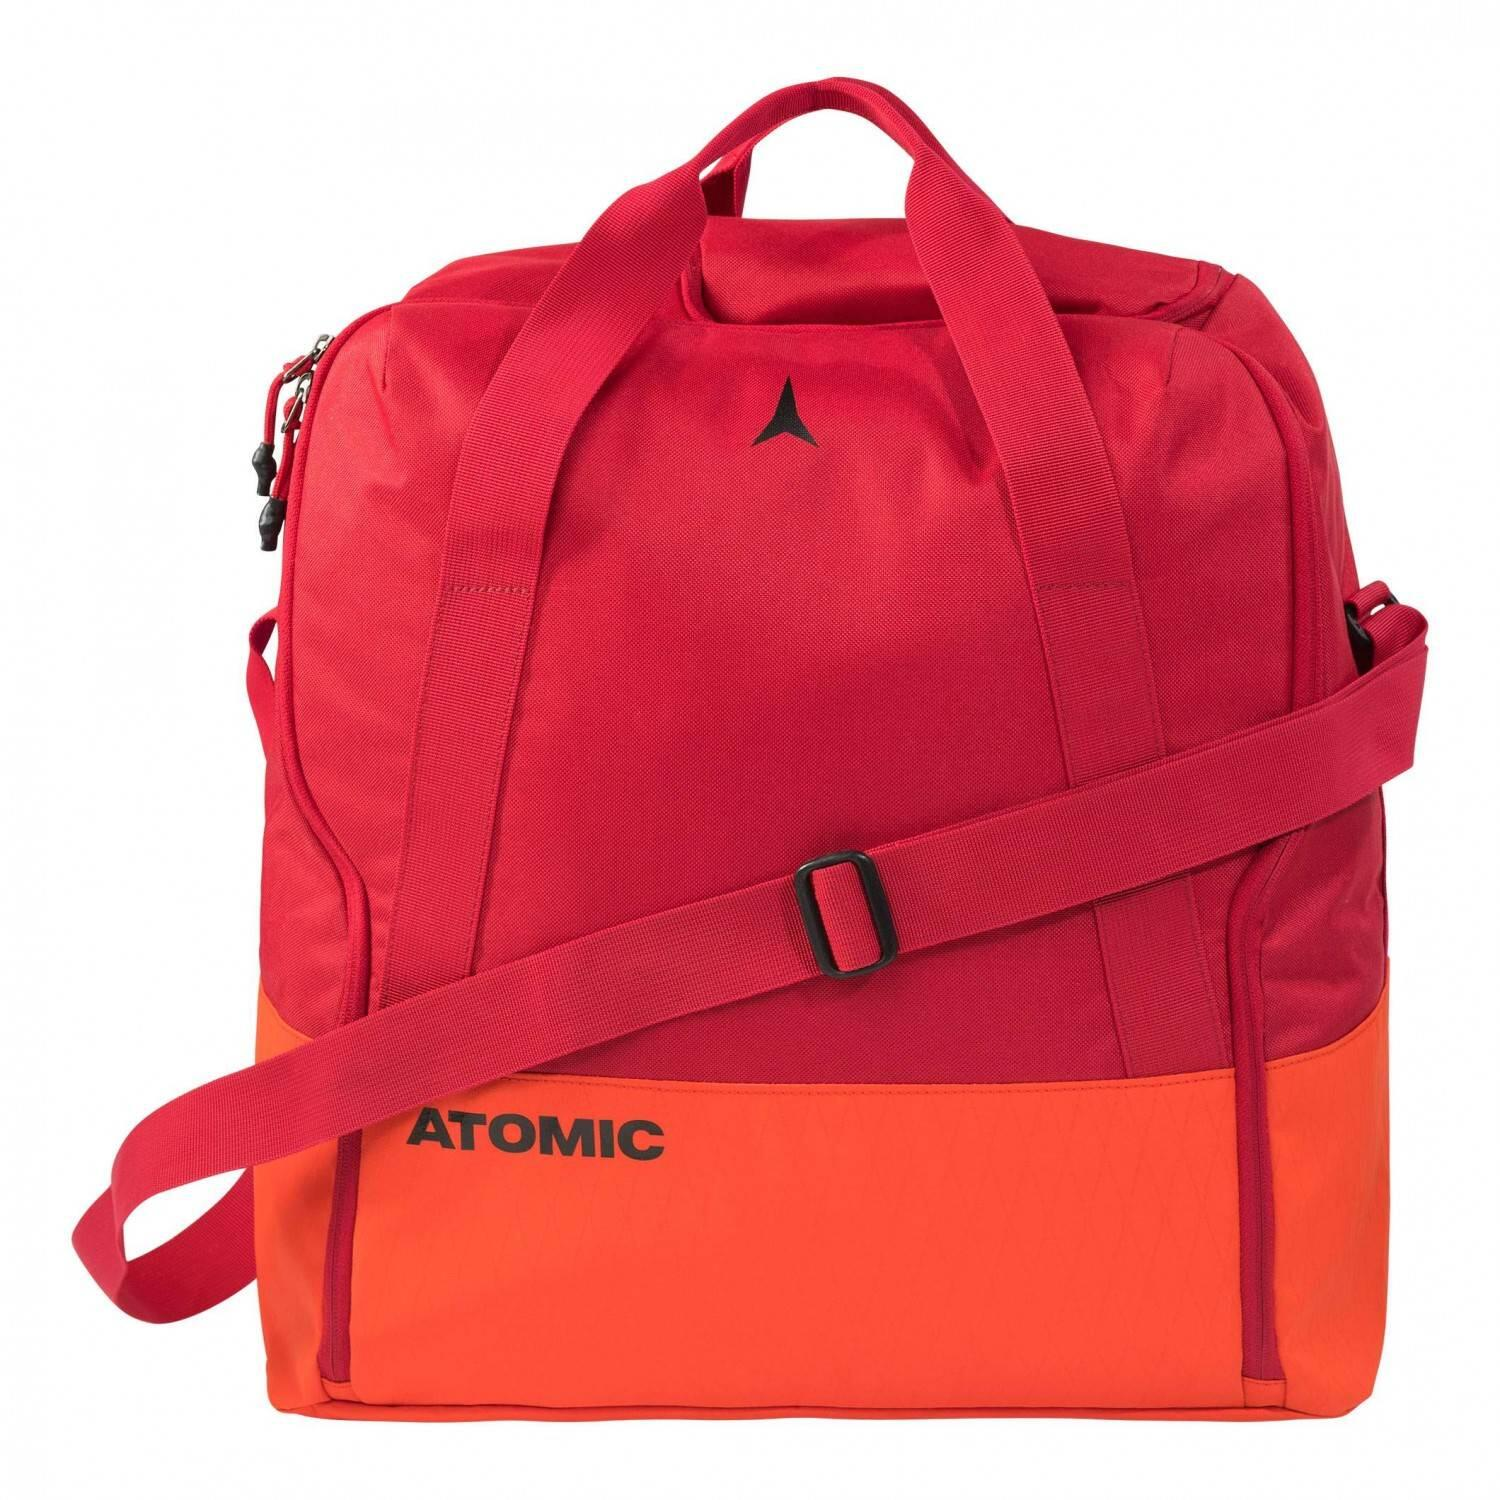 atomic-schuhtasche-boot-amp-helmet-bag-farbe-red-bright-red-